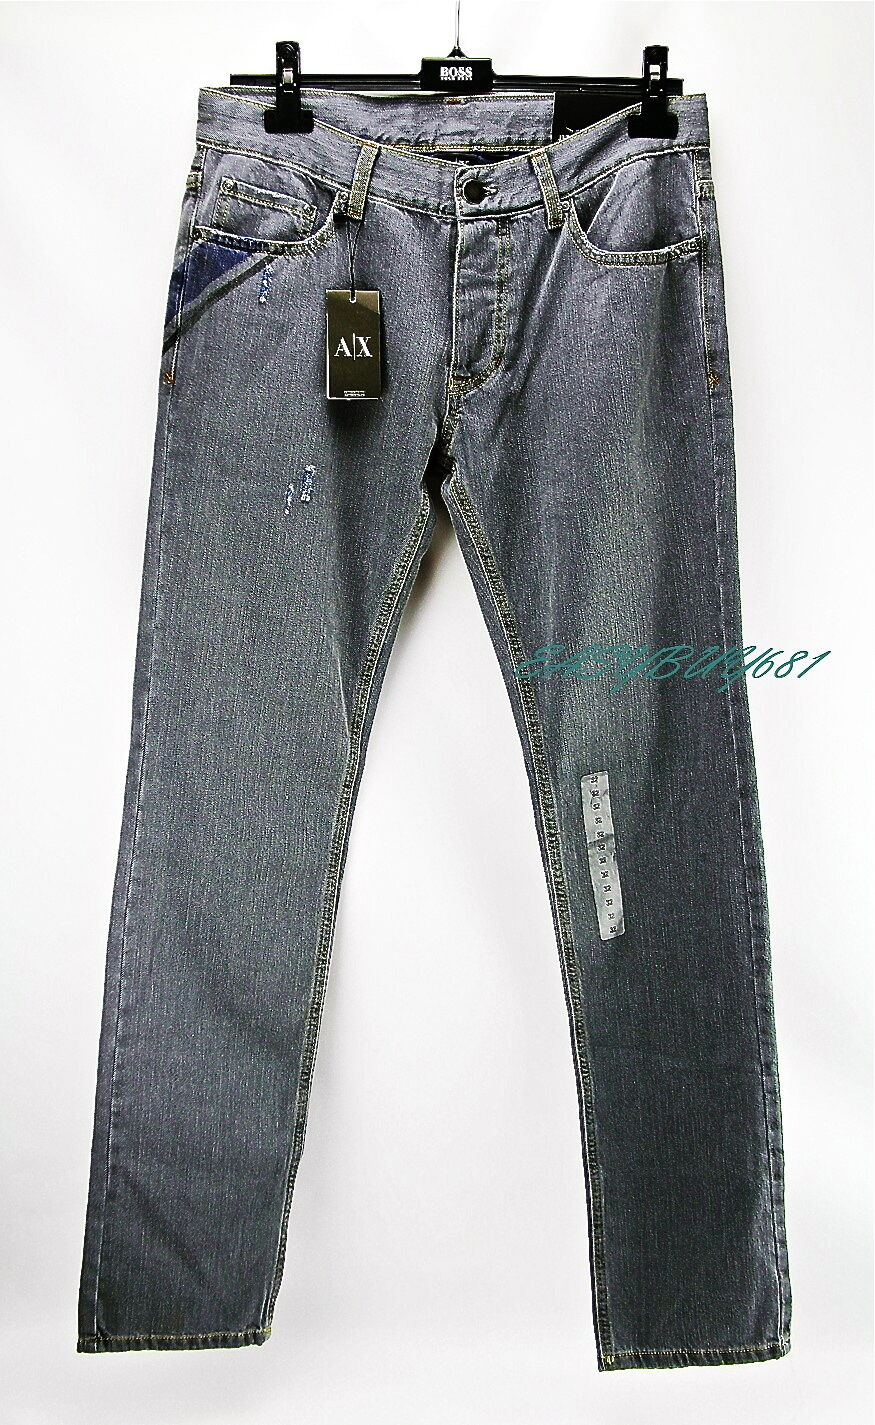 A X ARMANI EXCHANGE J130 SKINNY Distressed JEANS Low Rise 100% Cotton, Authentic